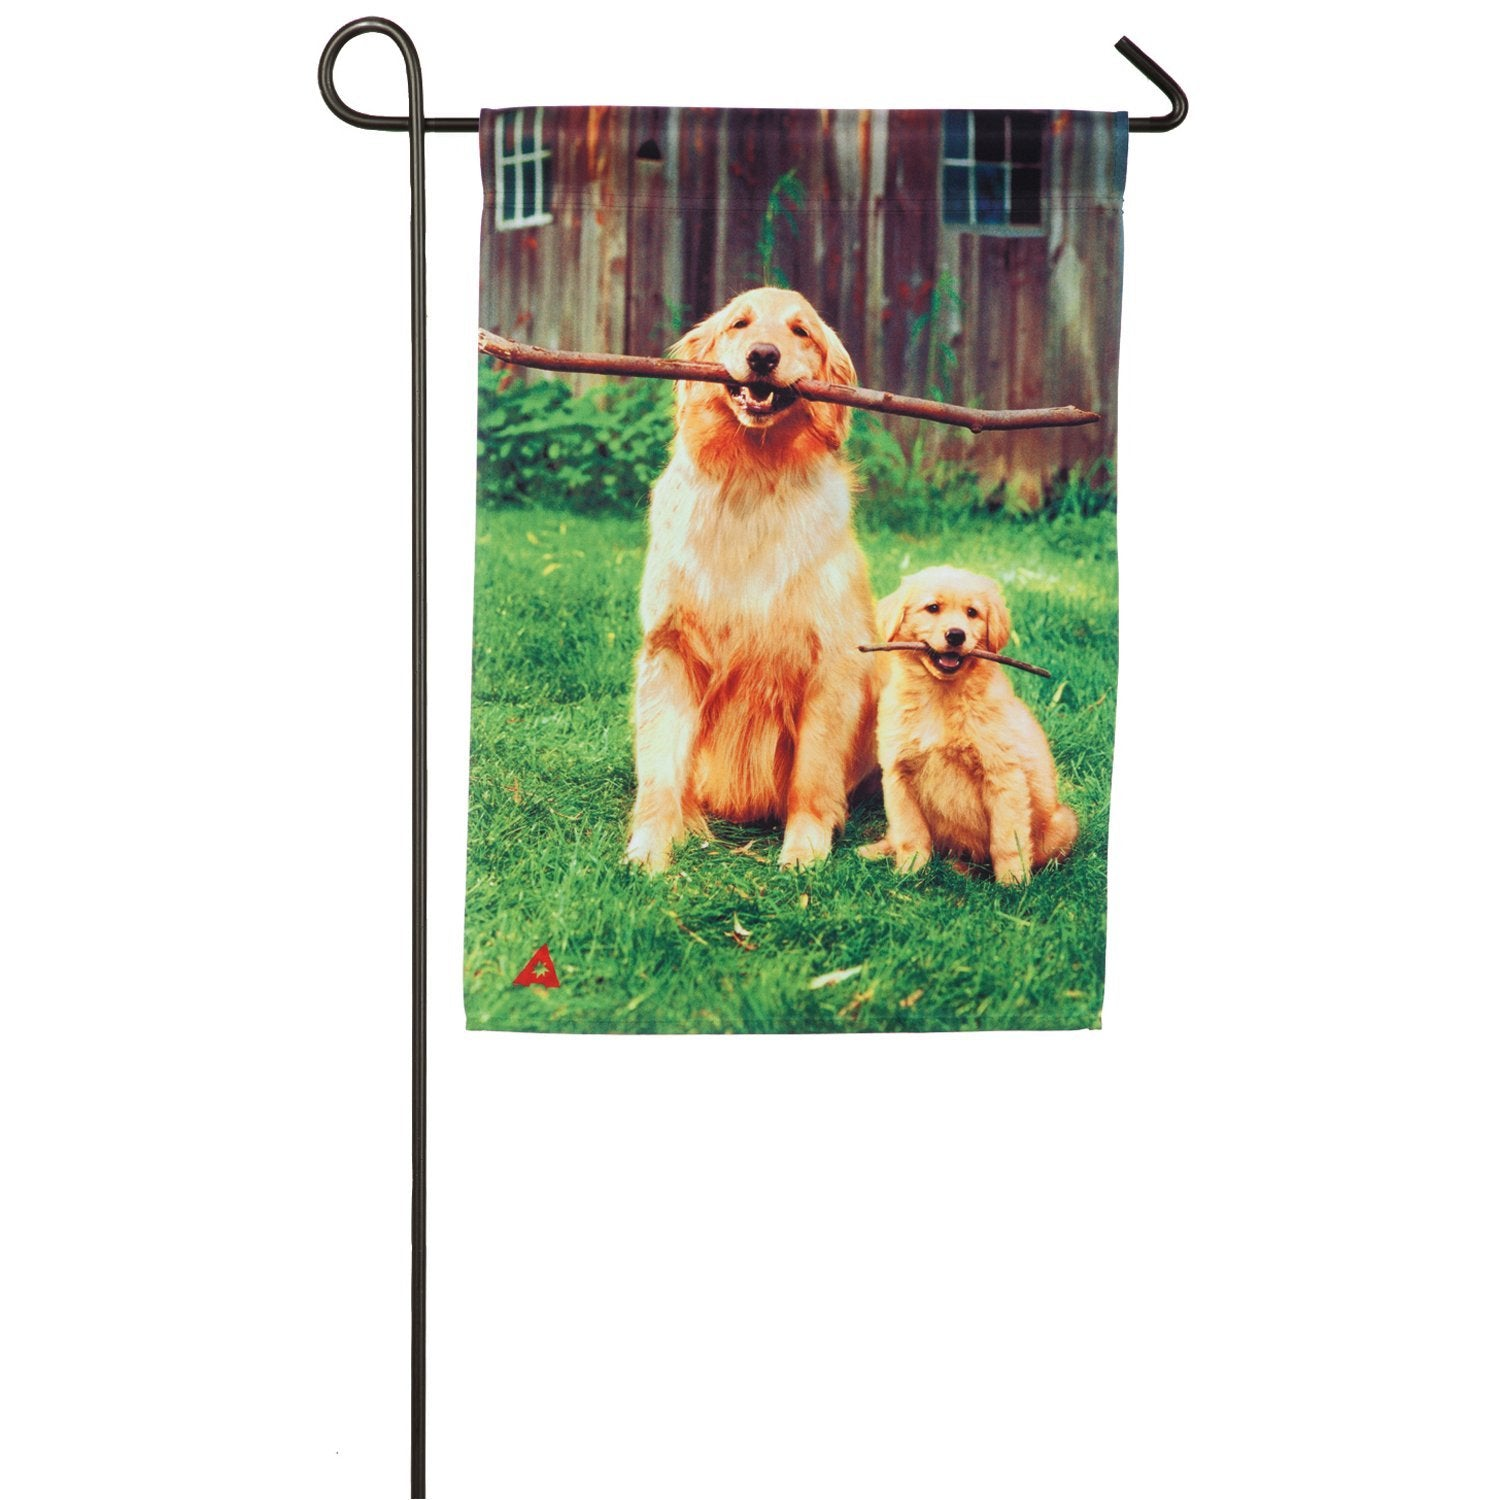 Big and Little Dog with Sticks Garden Flag, #14a4729